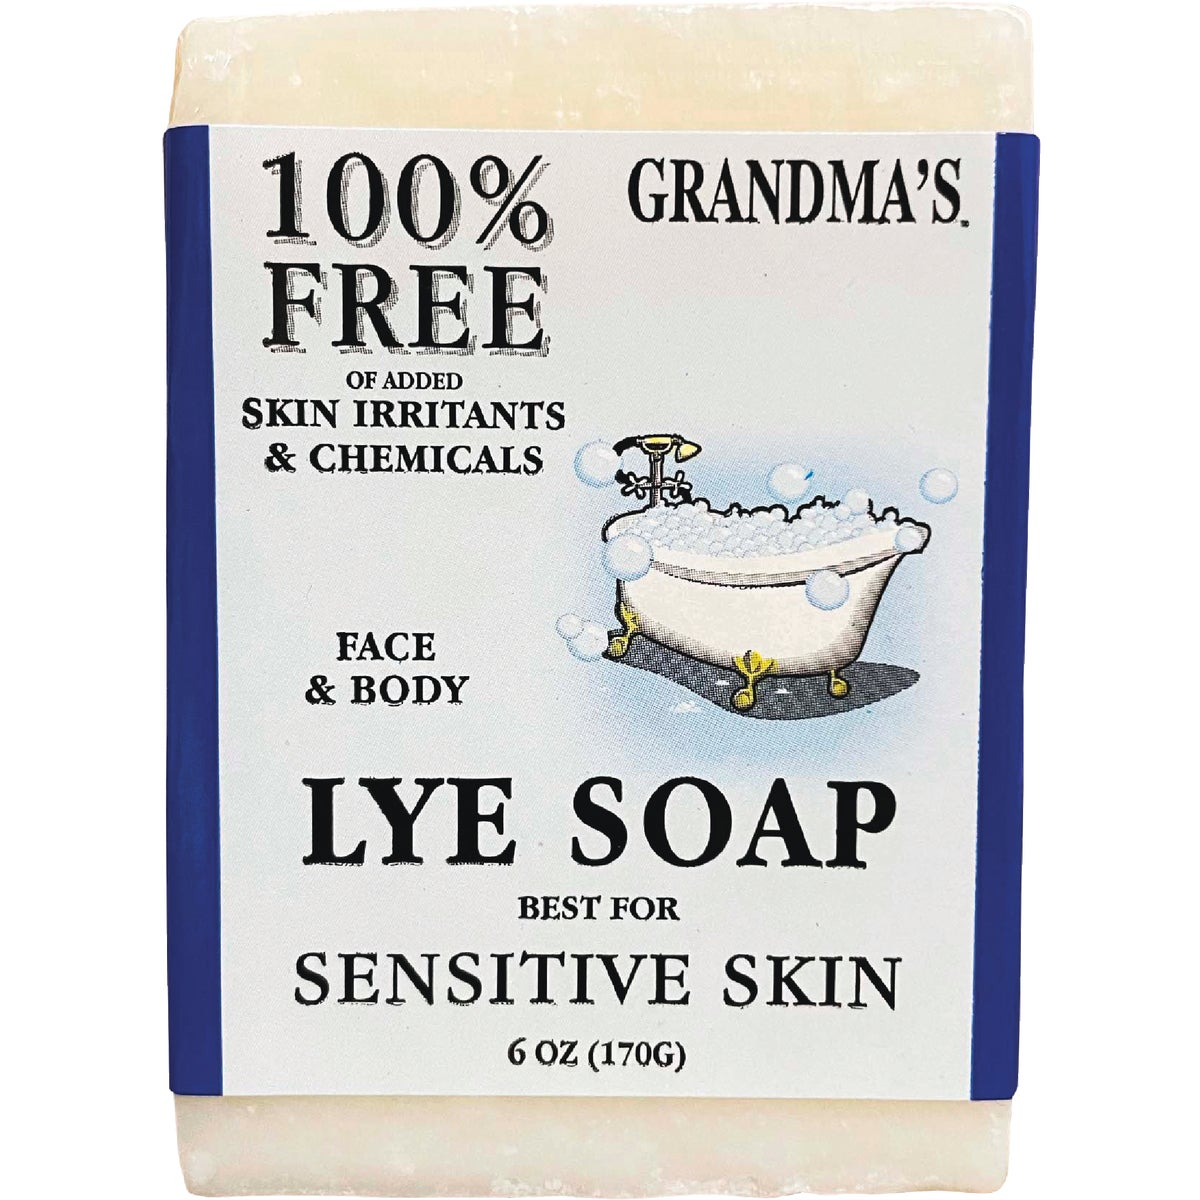 7OZ BAR LYE SOAP - 60018 by Remwood Prod Co